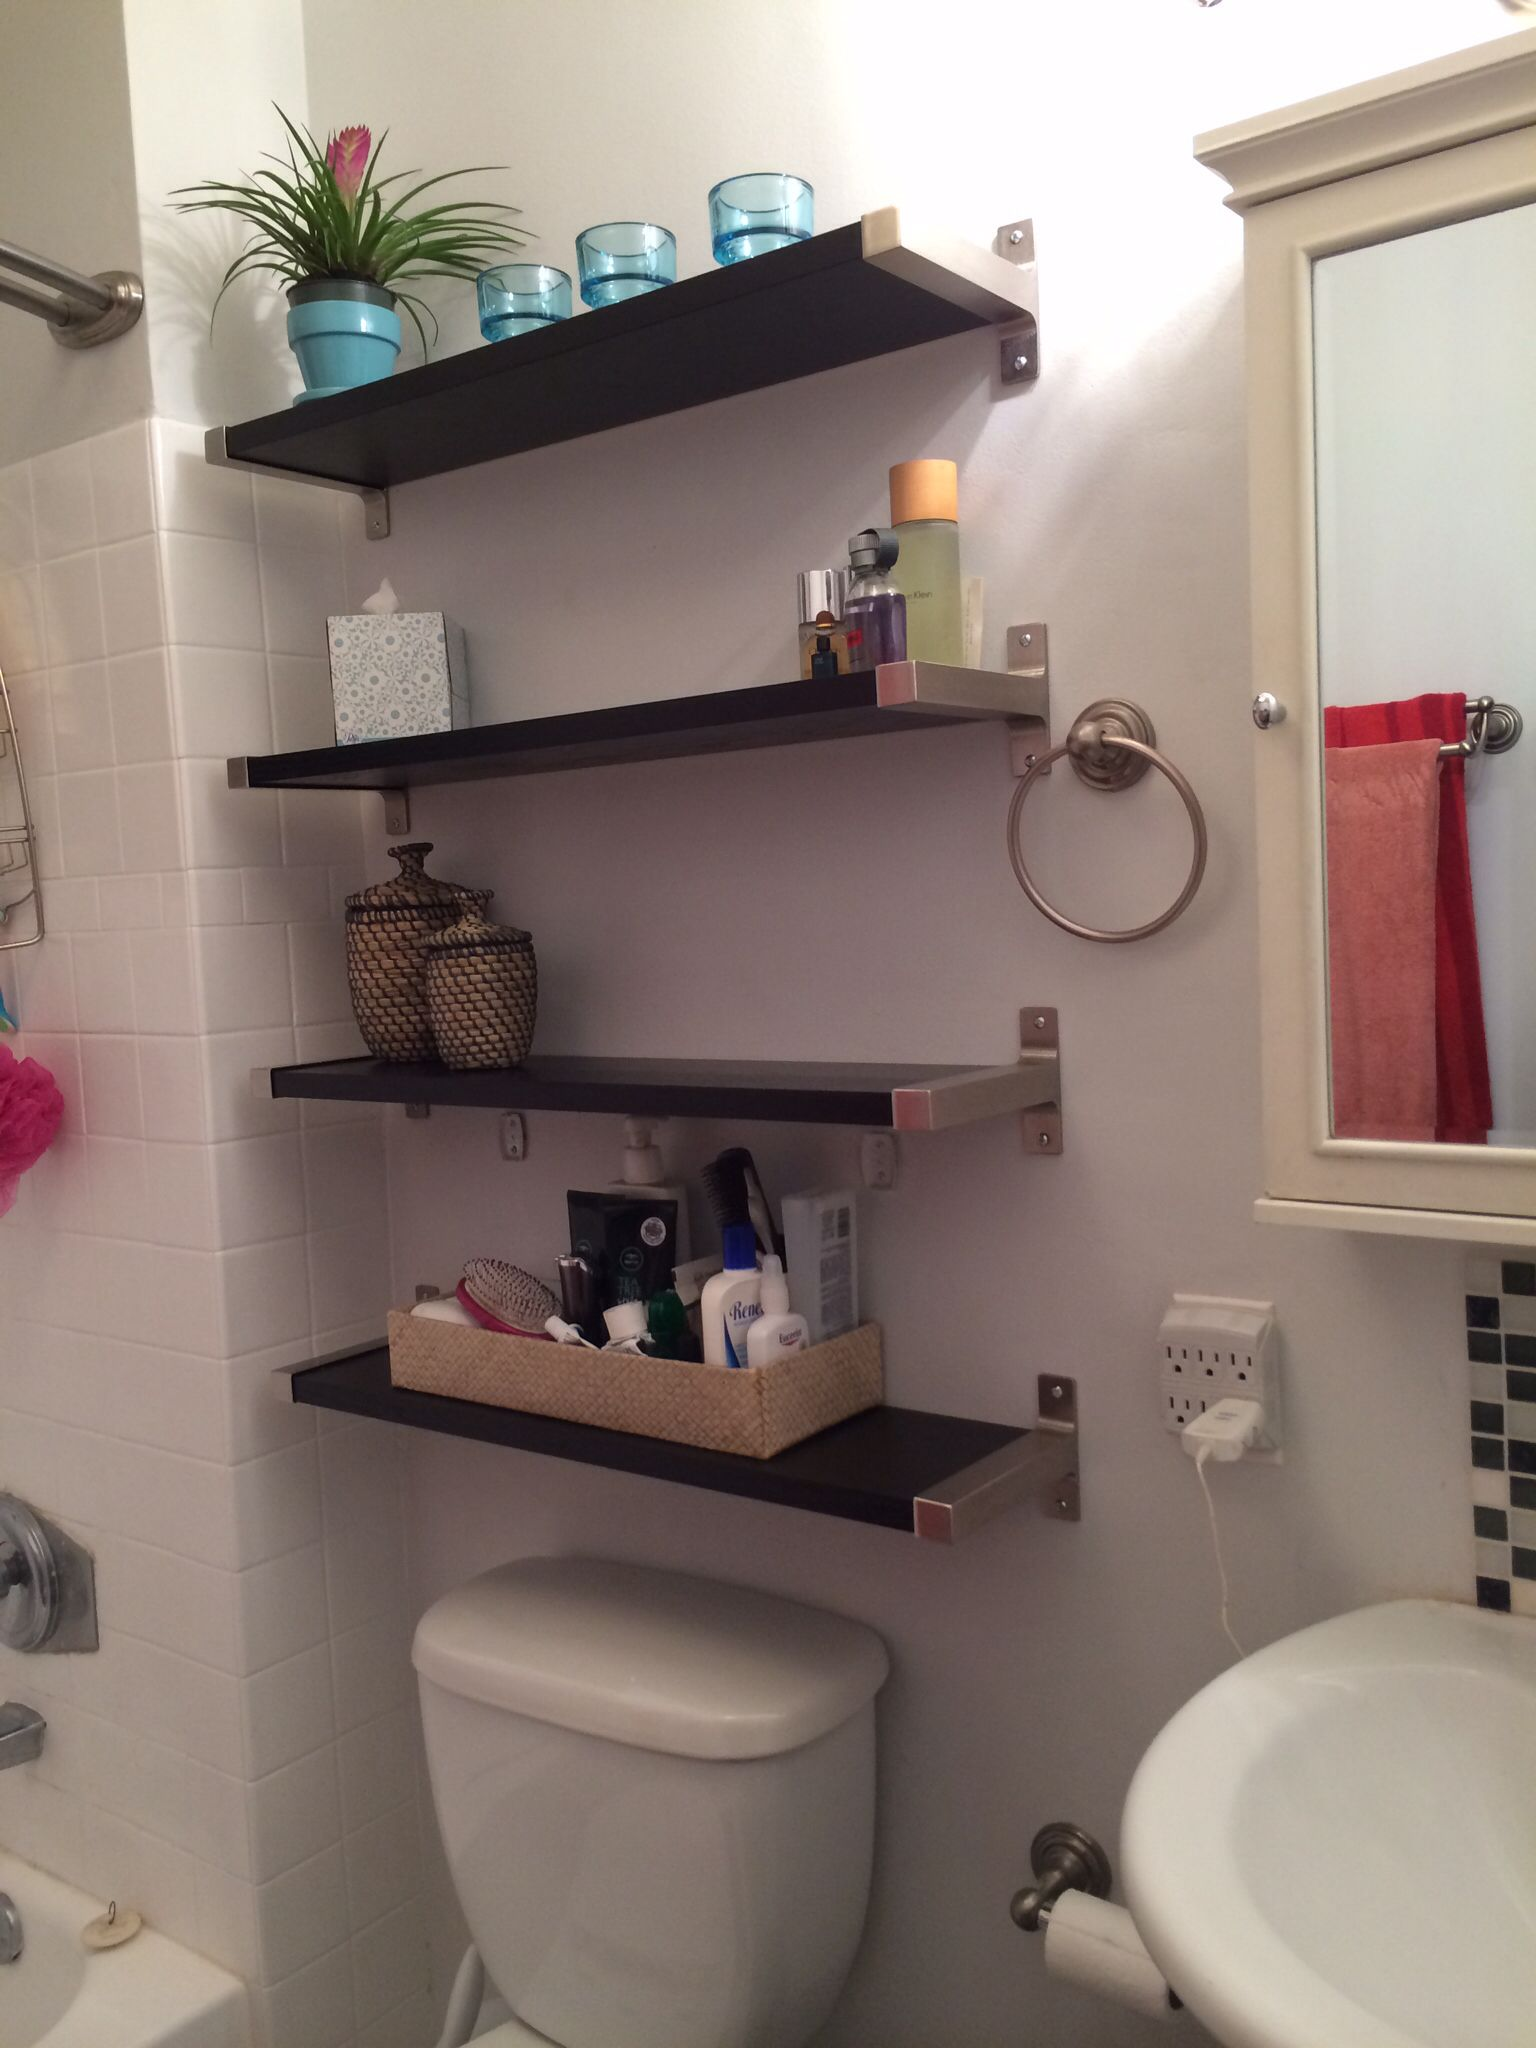 Small Bathroom Solutions Ikea Shelves Bathroom Pinterest - Toilet organizer for small bathroom ideas